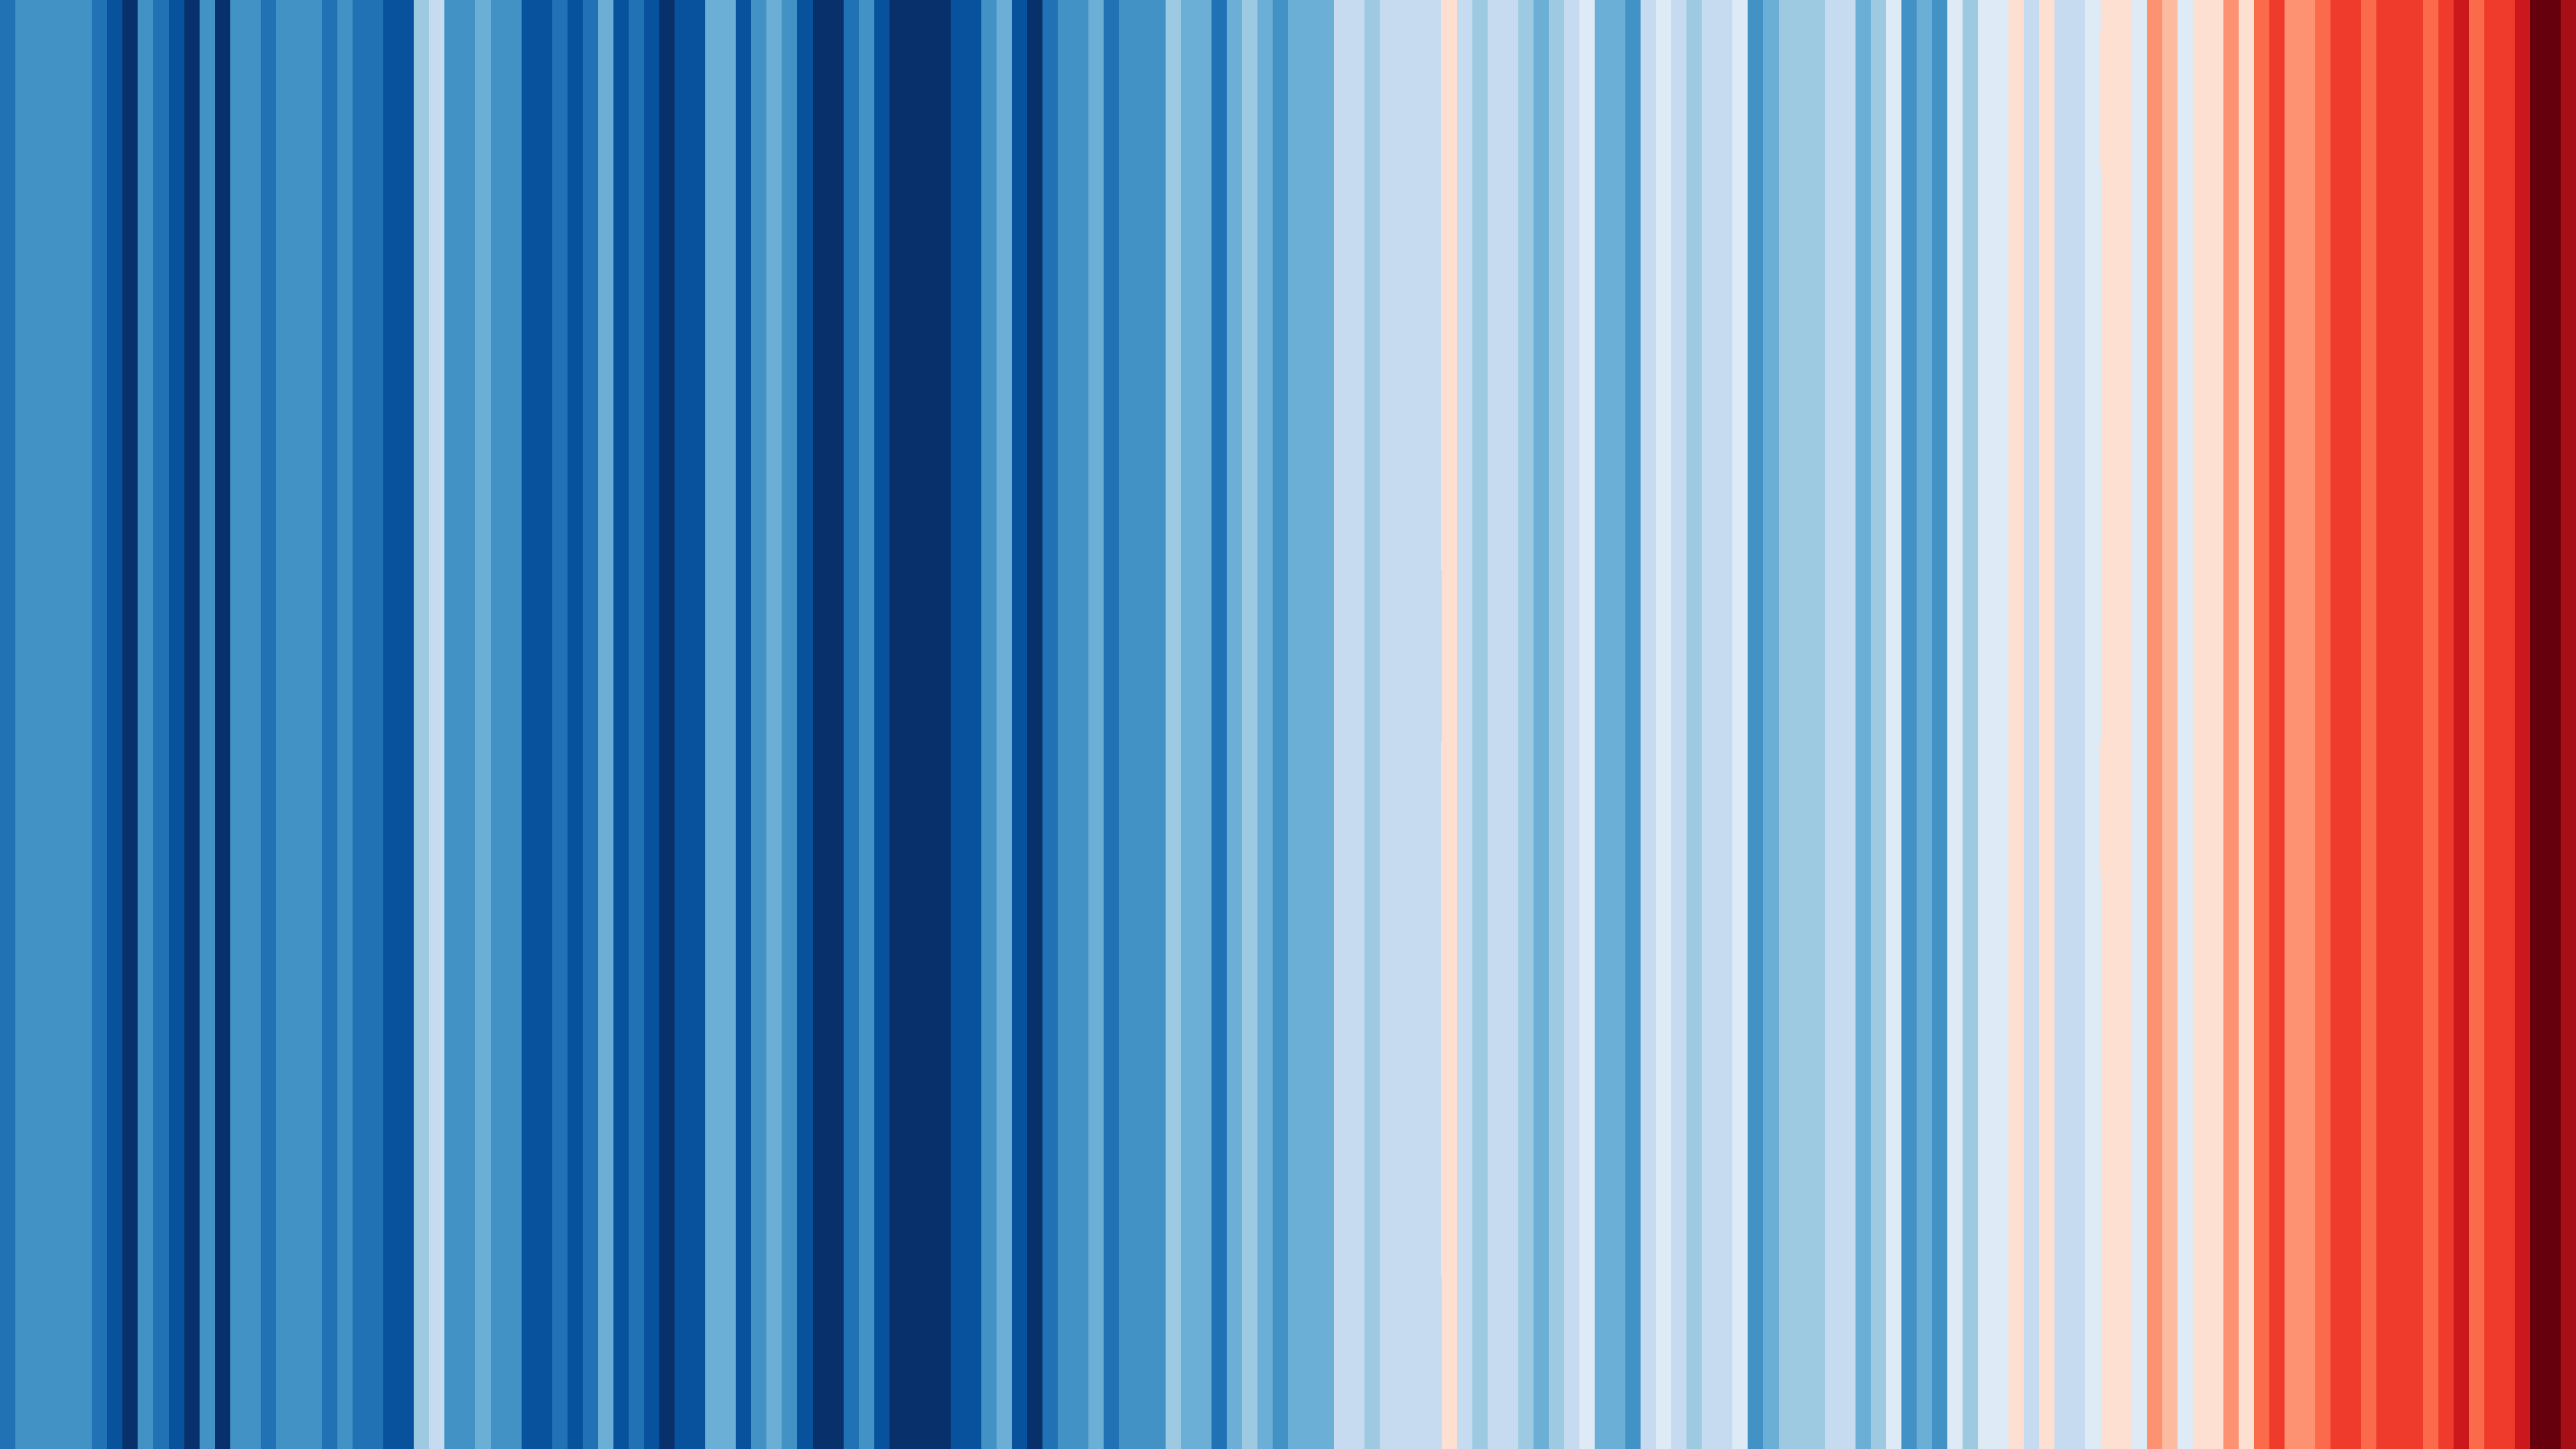 Prof. Ed Hawkins' Warming Stripes visual for Global Temperatures.